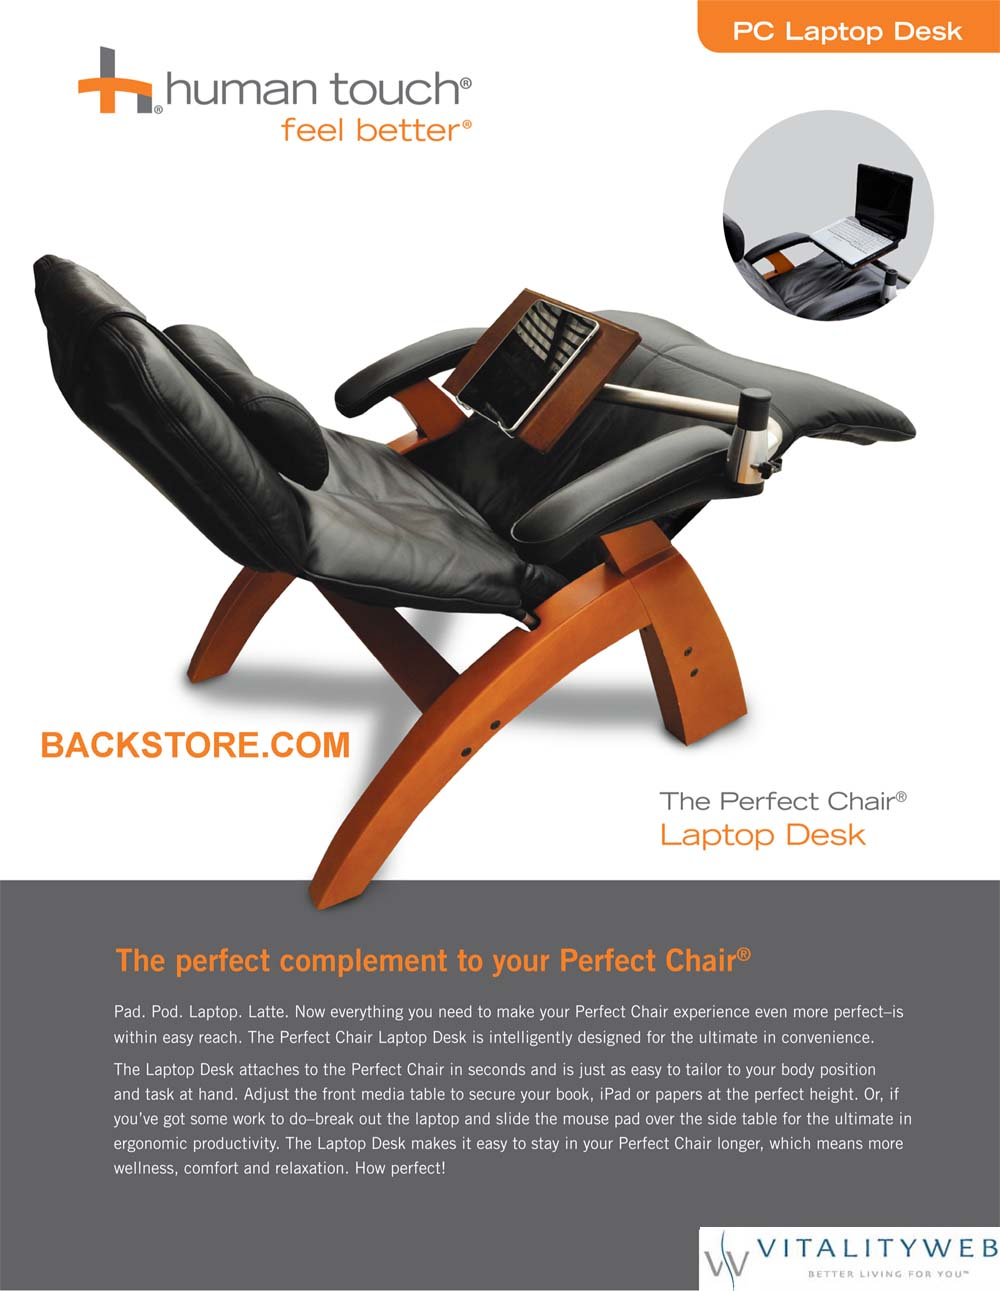 Perfect Chair Laptop Desk: - USA Ups Ground Shipping Included!